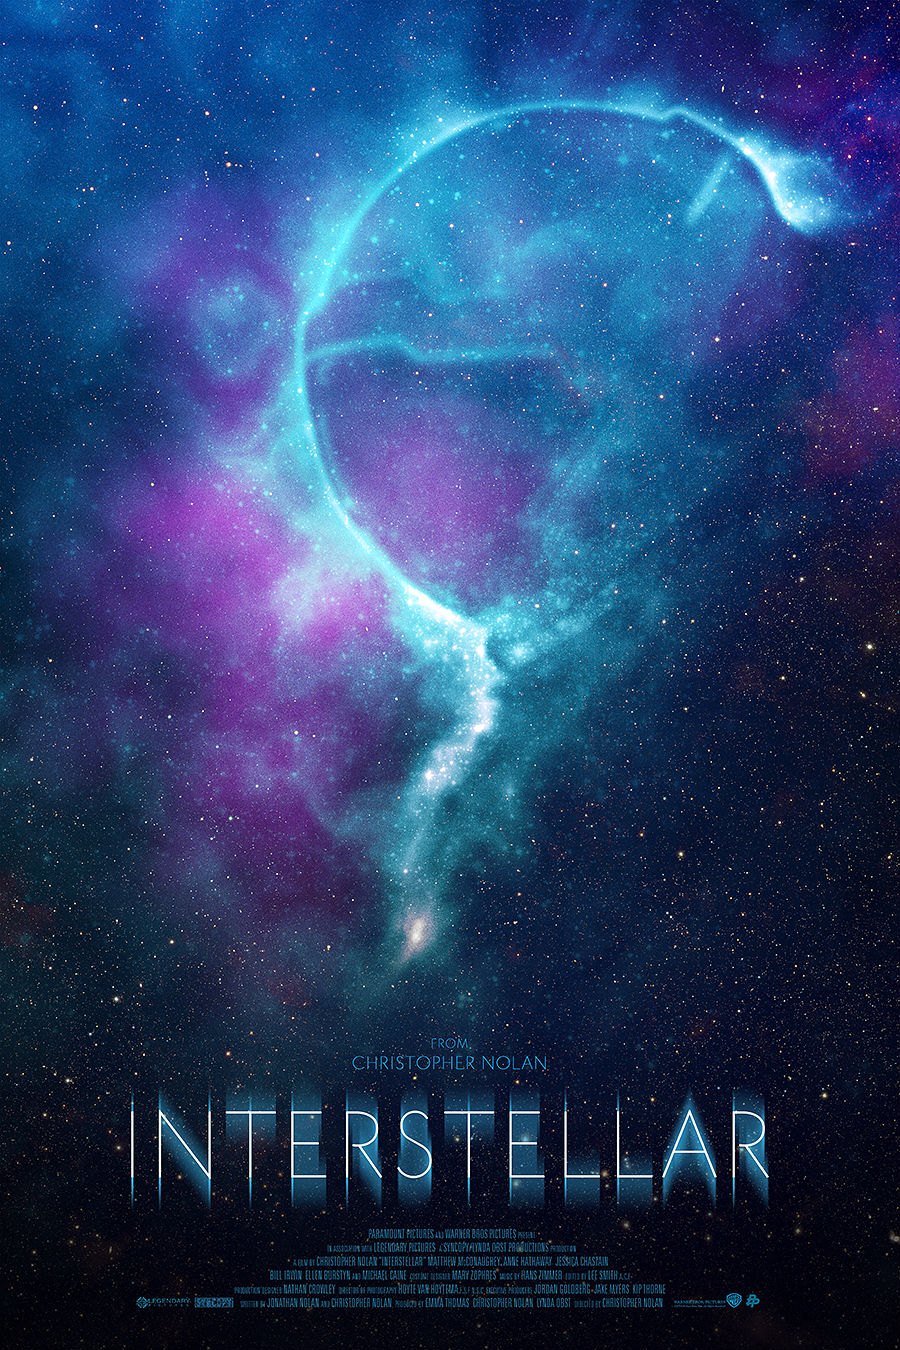 Interstellar Poster Cool Stuff: Christophe...